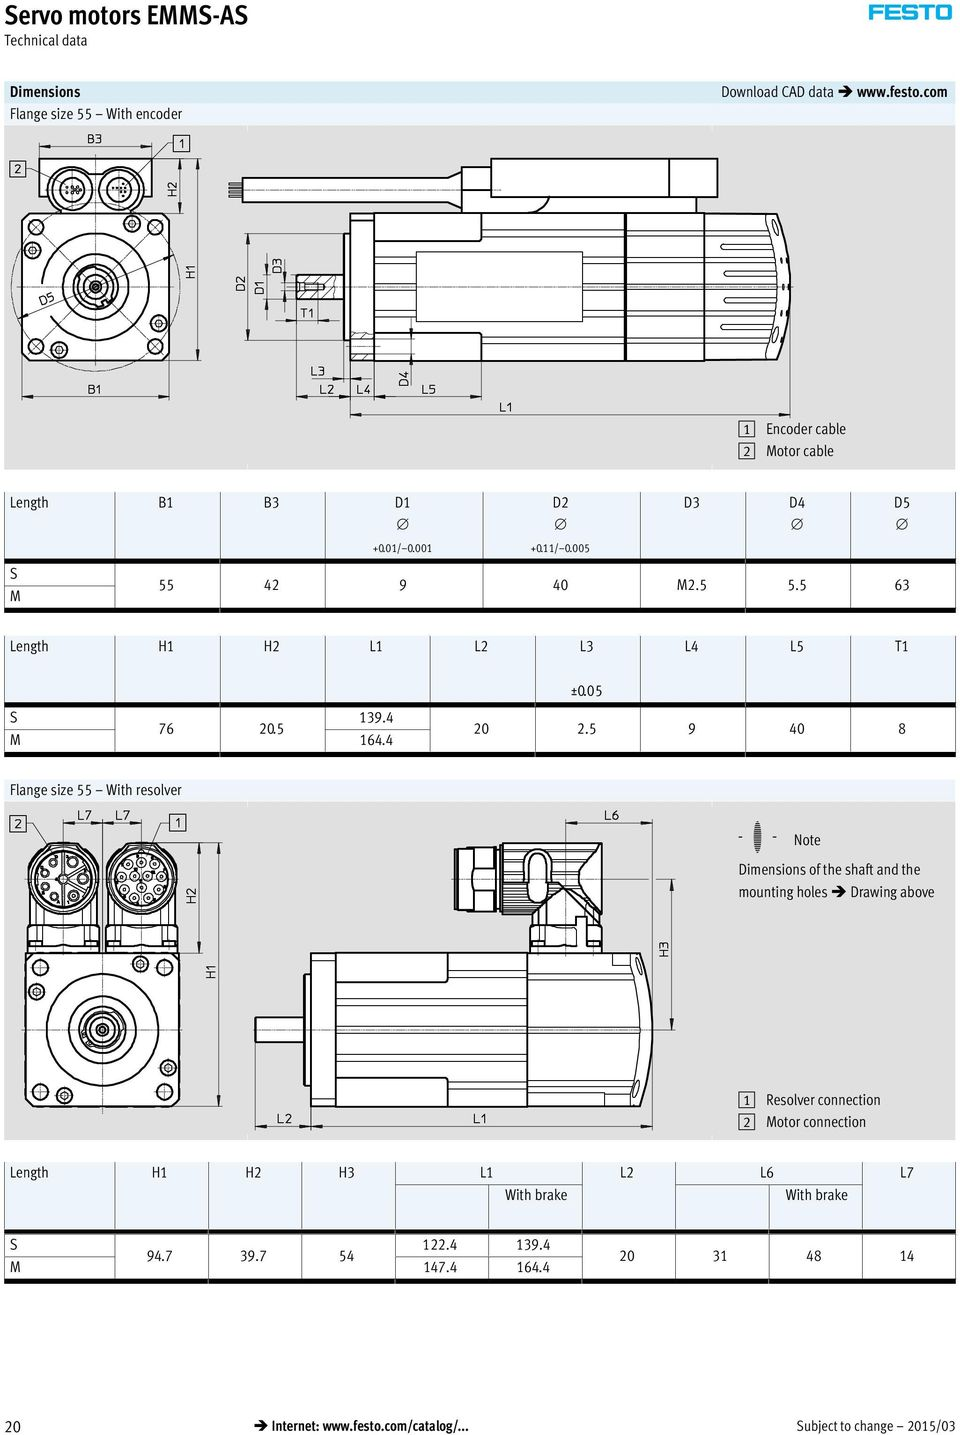 5 9 40 8 Flange size 55 With resolver -H- Note Dimensions of the shaft and the mounting holes Drawing above 1 connection 2 Motor